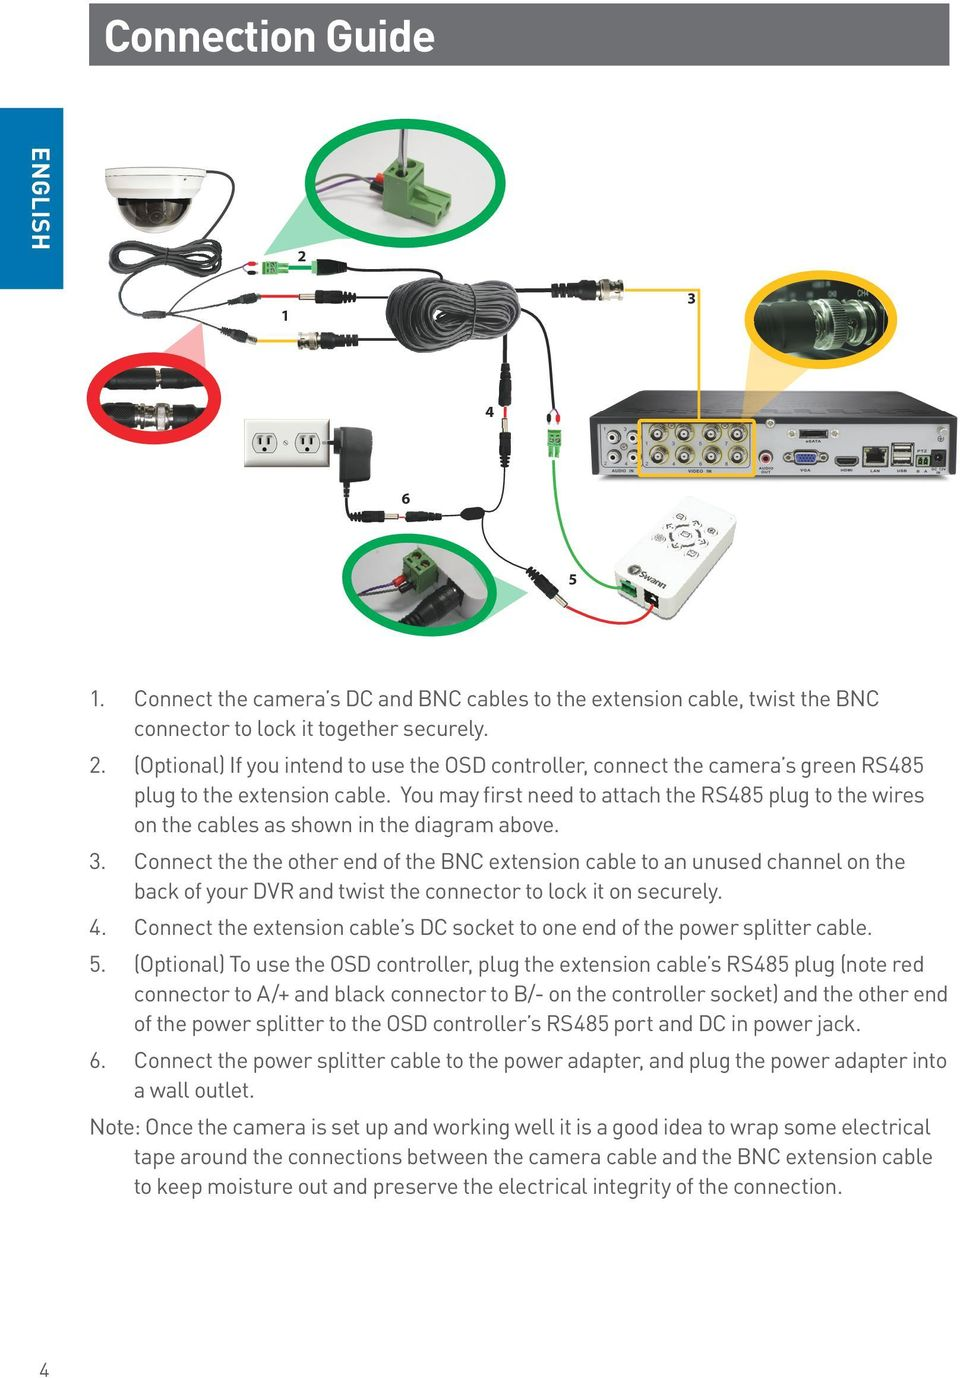 Connect the the other end of the BNC extension cable to an unused channel on the back of your DVR and twist the connector to lock it on securely. 4.